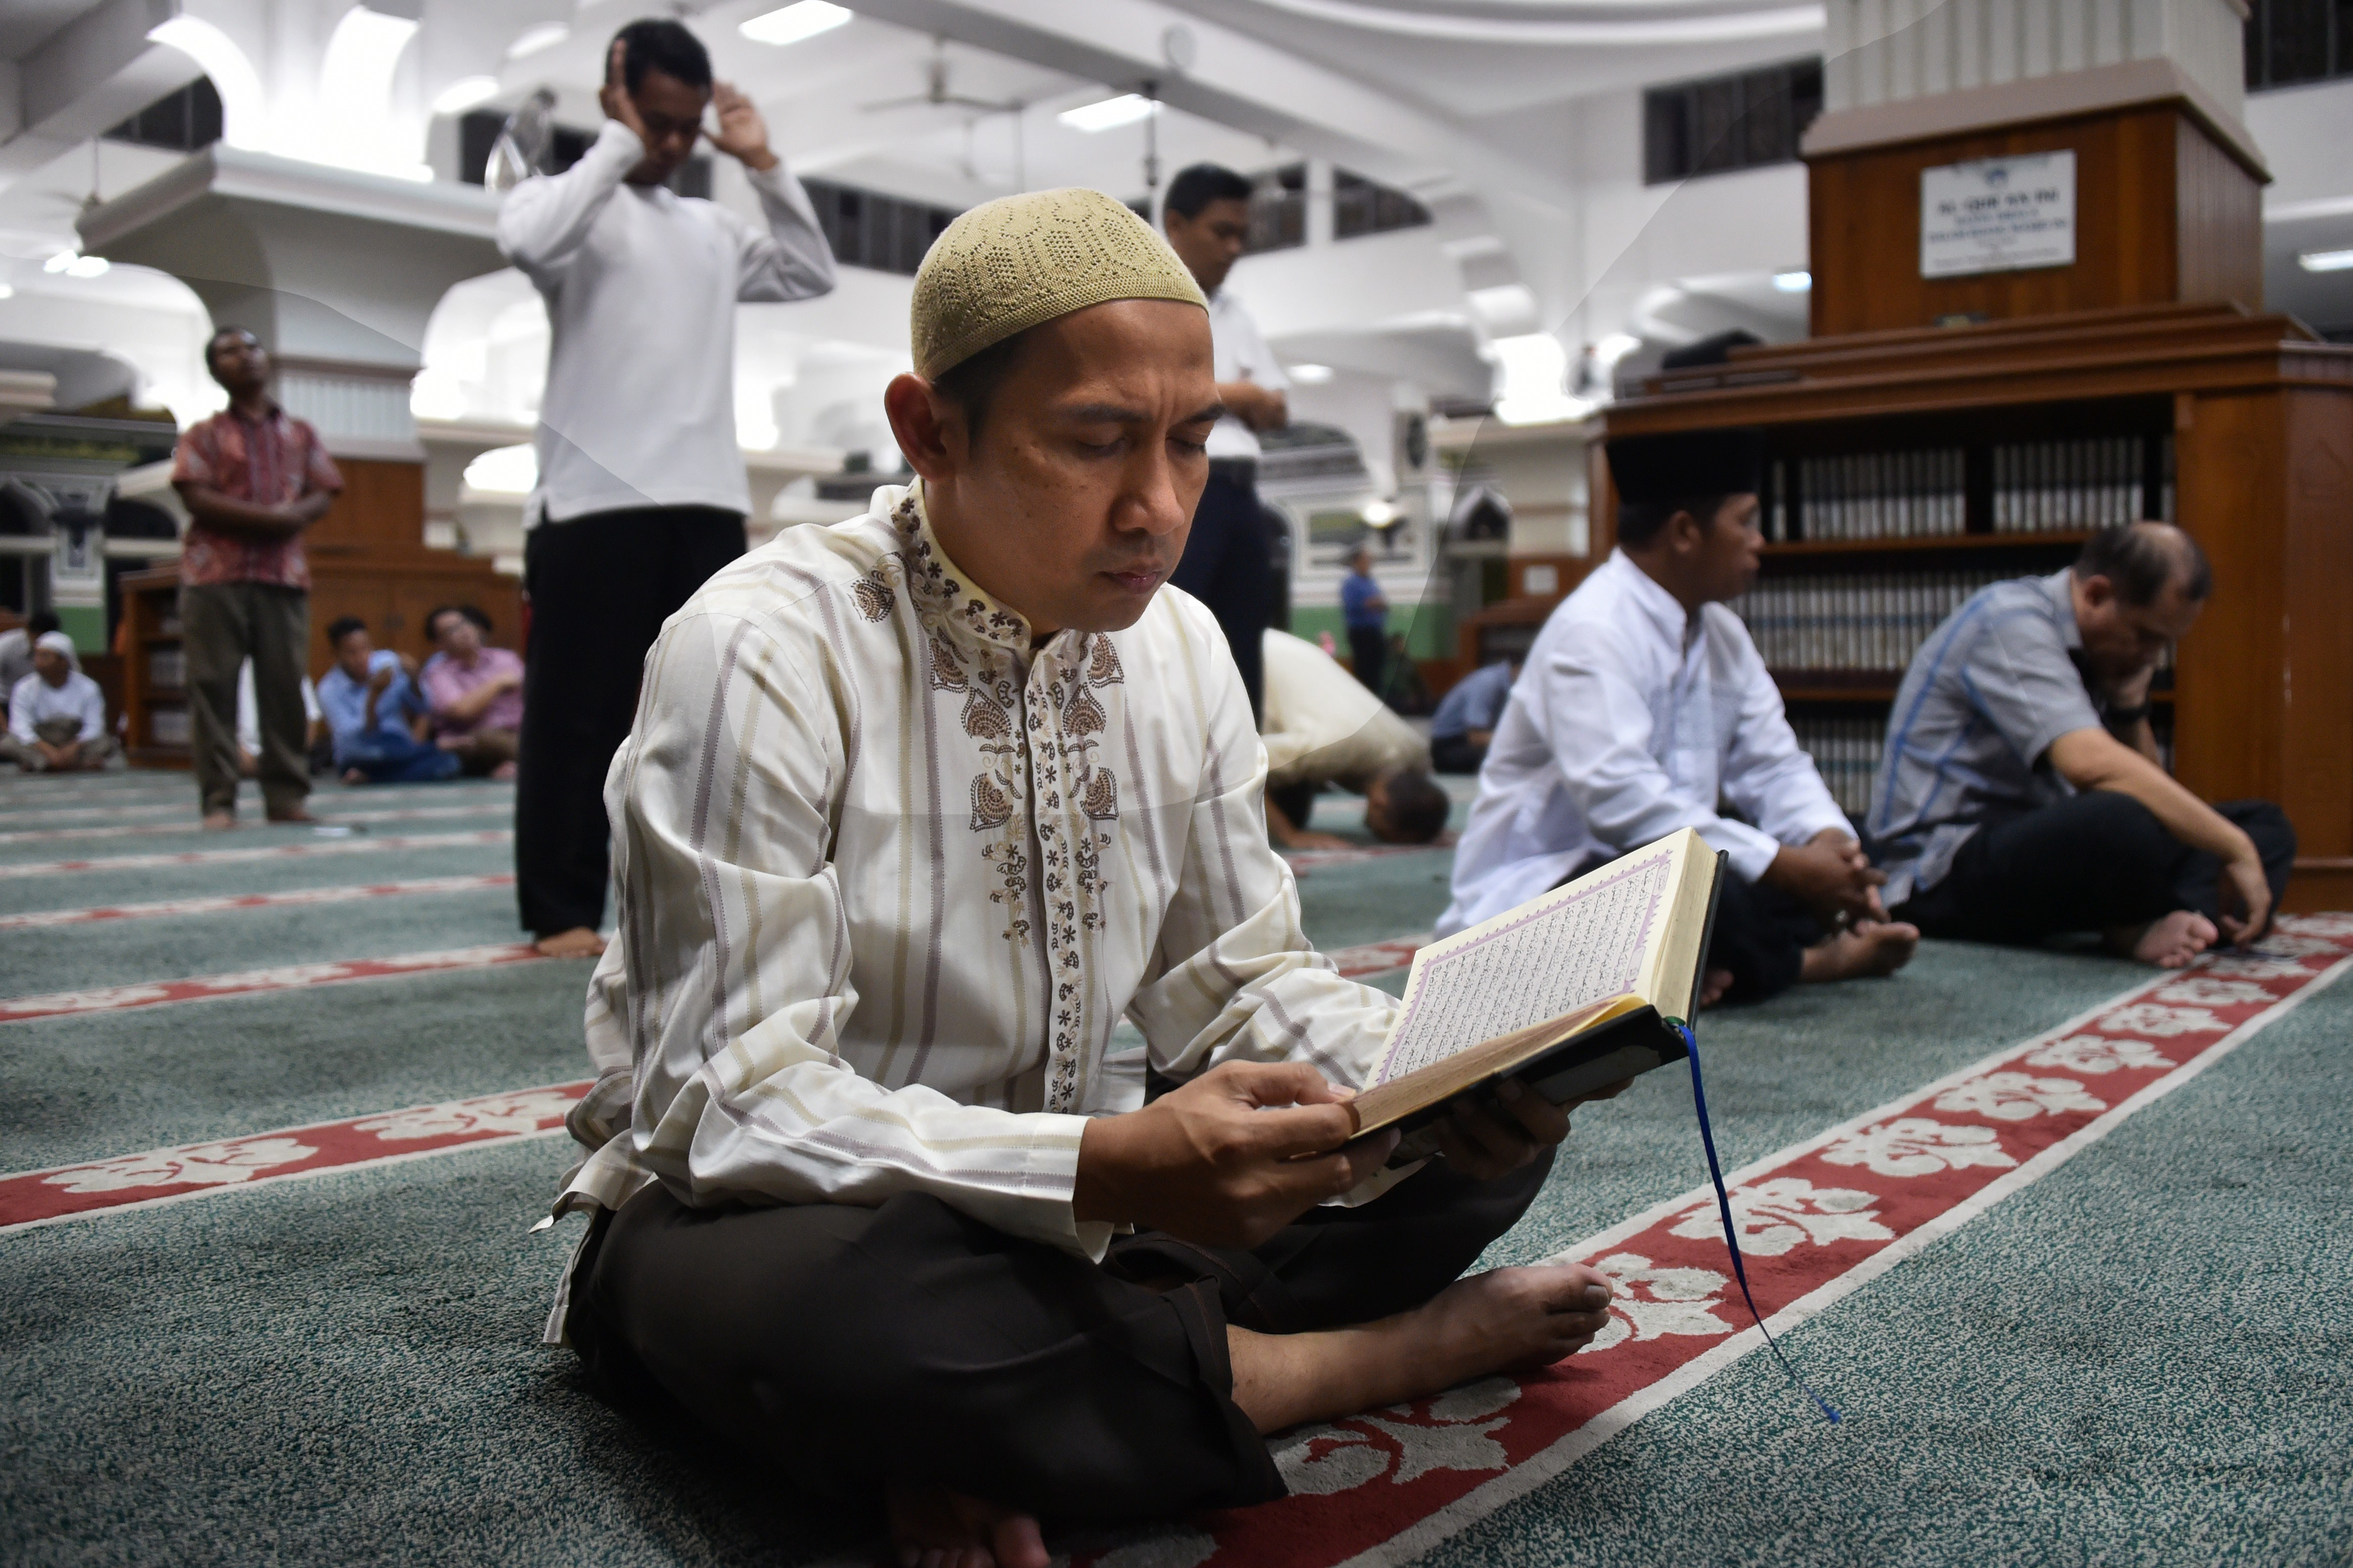 A man reads the koran as Indonesian Muslims wait for the first day of Ramadan prayers at Al-azhar Mosque in Jakarta on June 17, 2015, to mark the Muslim holy fasting month.